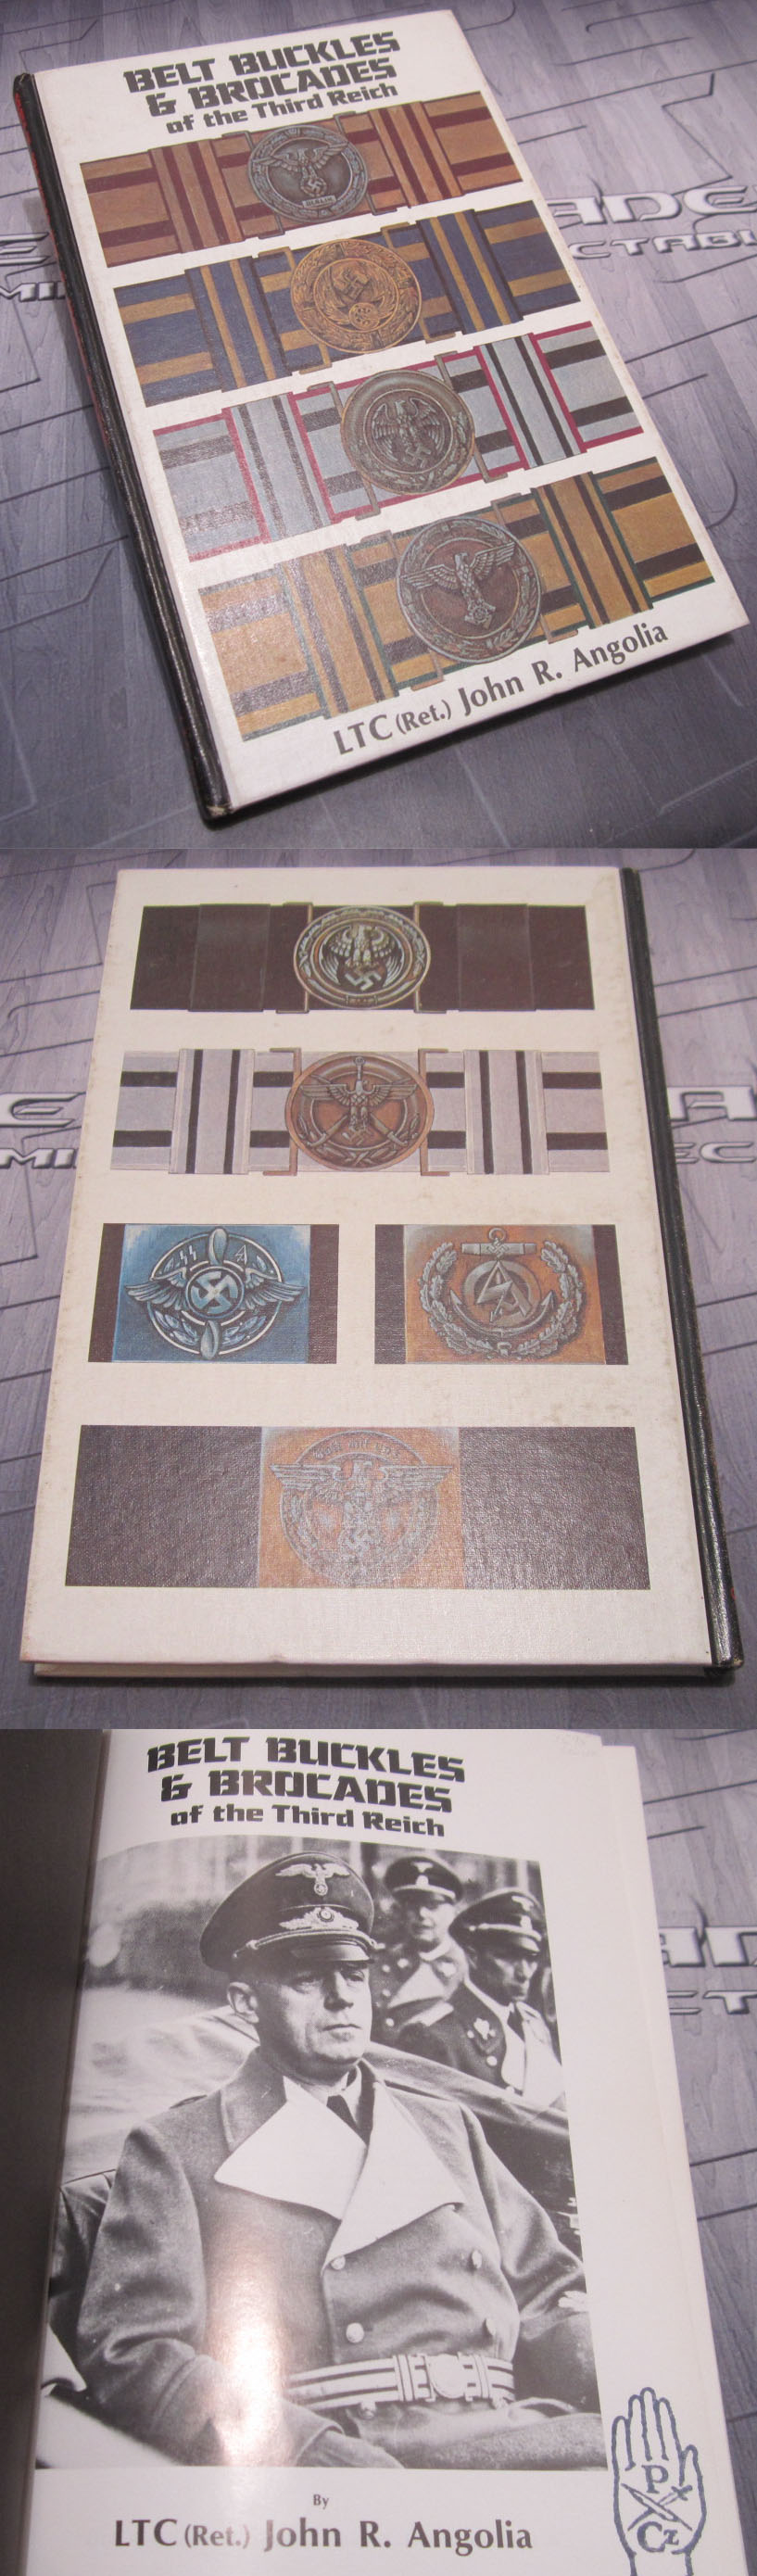 Belt Buckles and Brocades of the Third Reich